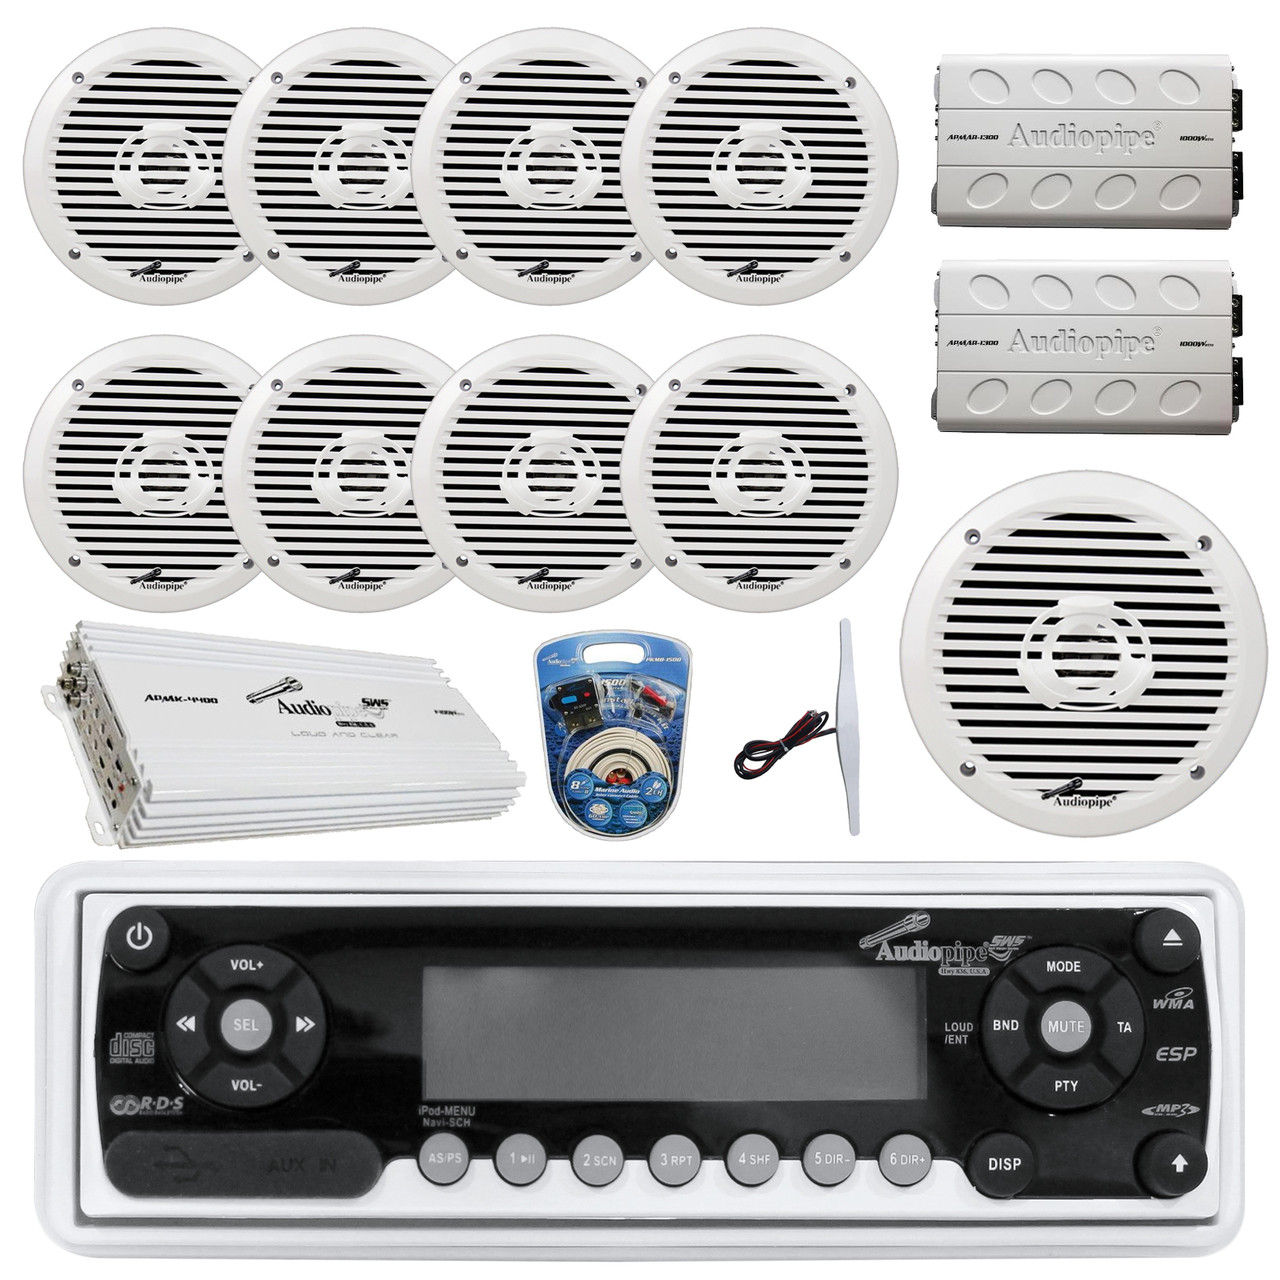 small resolution of 36 42 boat audiopipe marine am fm cd receiver 8x 8 white boat speakers 2x 4 channel amp 1400w 10 subwoofer 2x mini 1000w amp 8 gauge marine